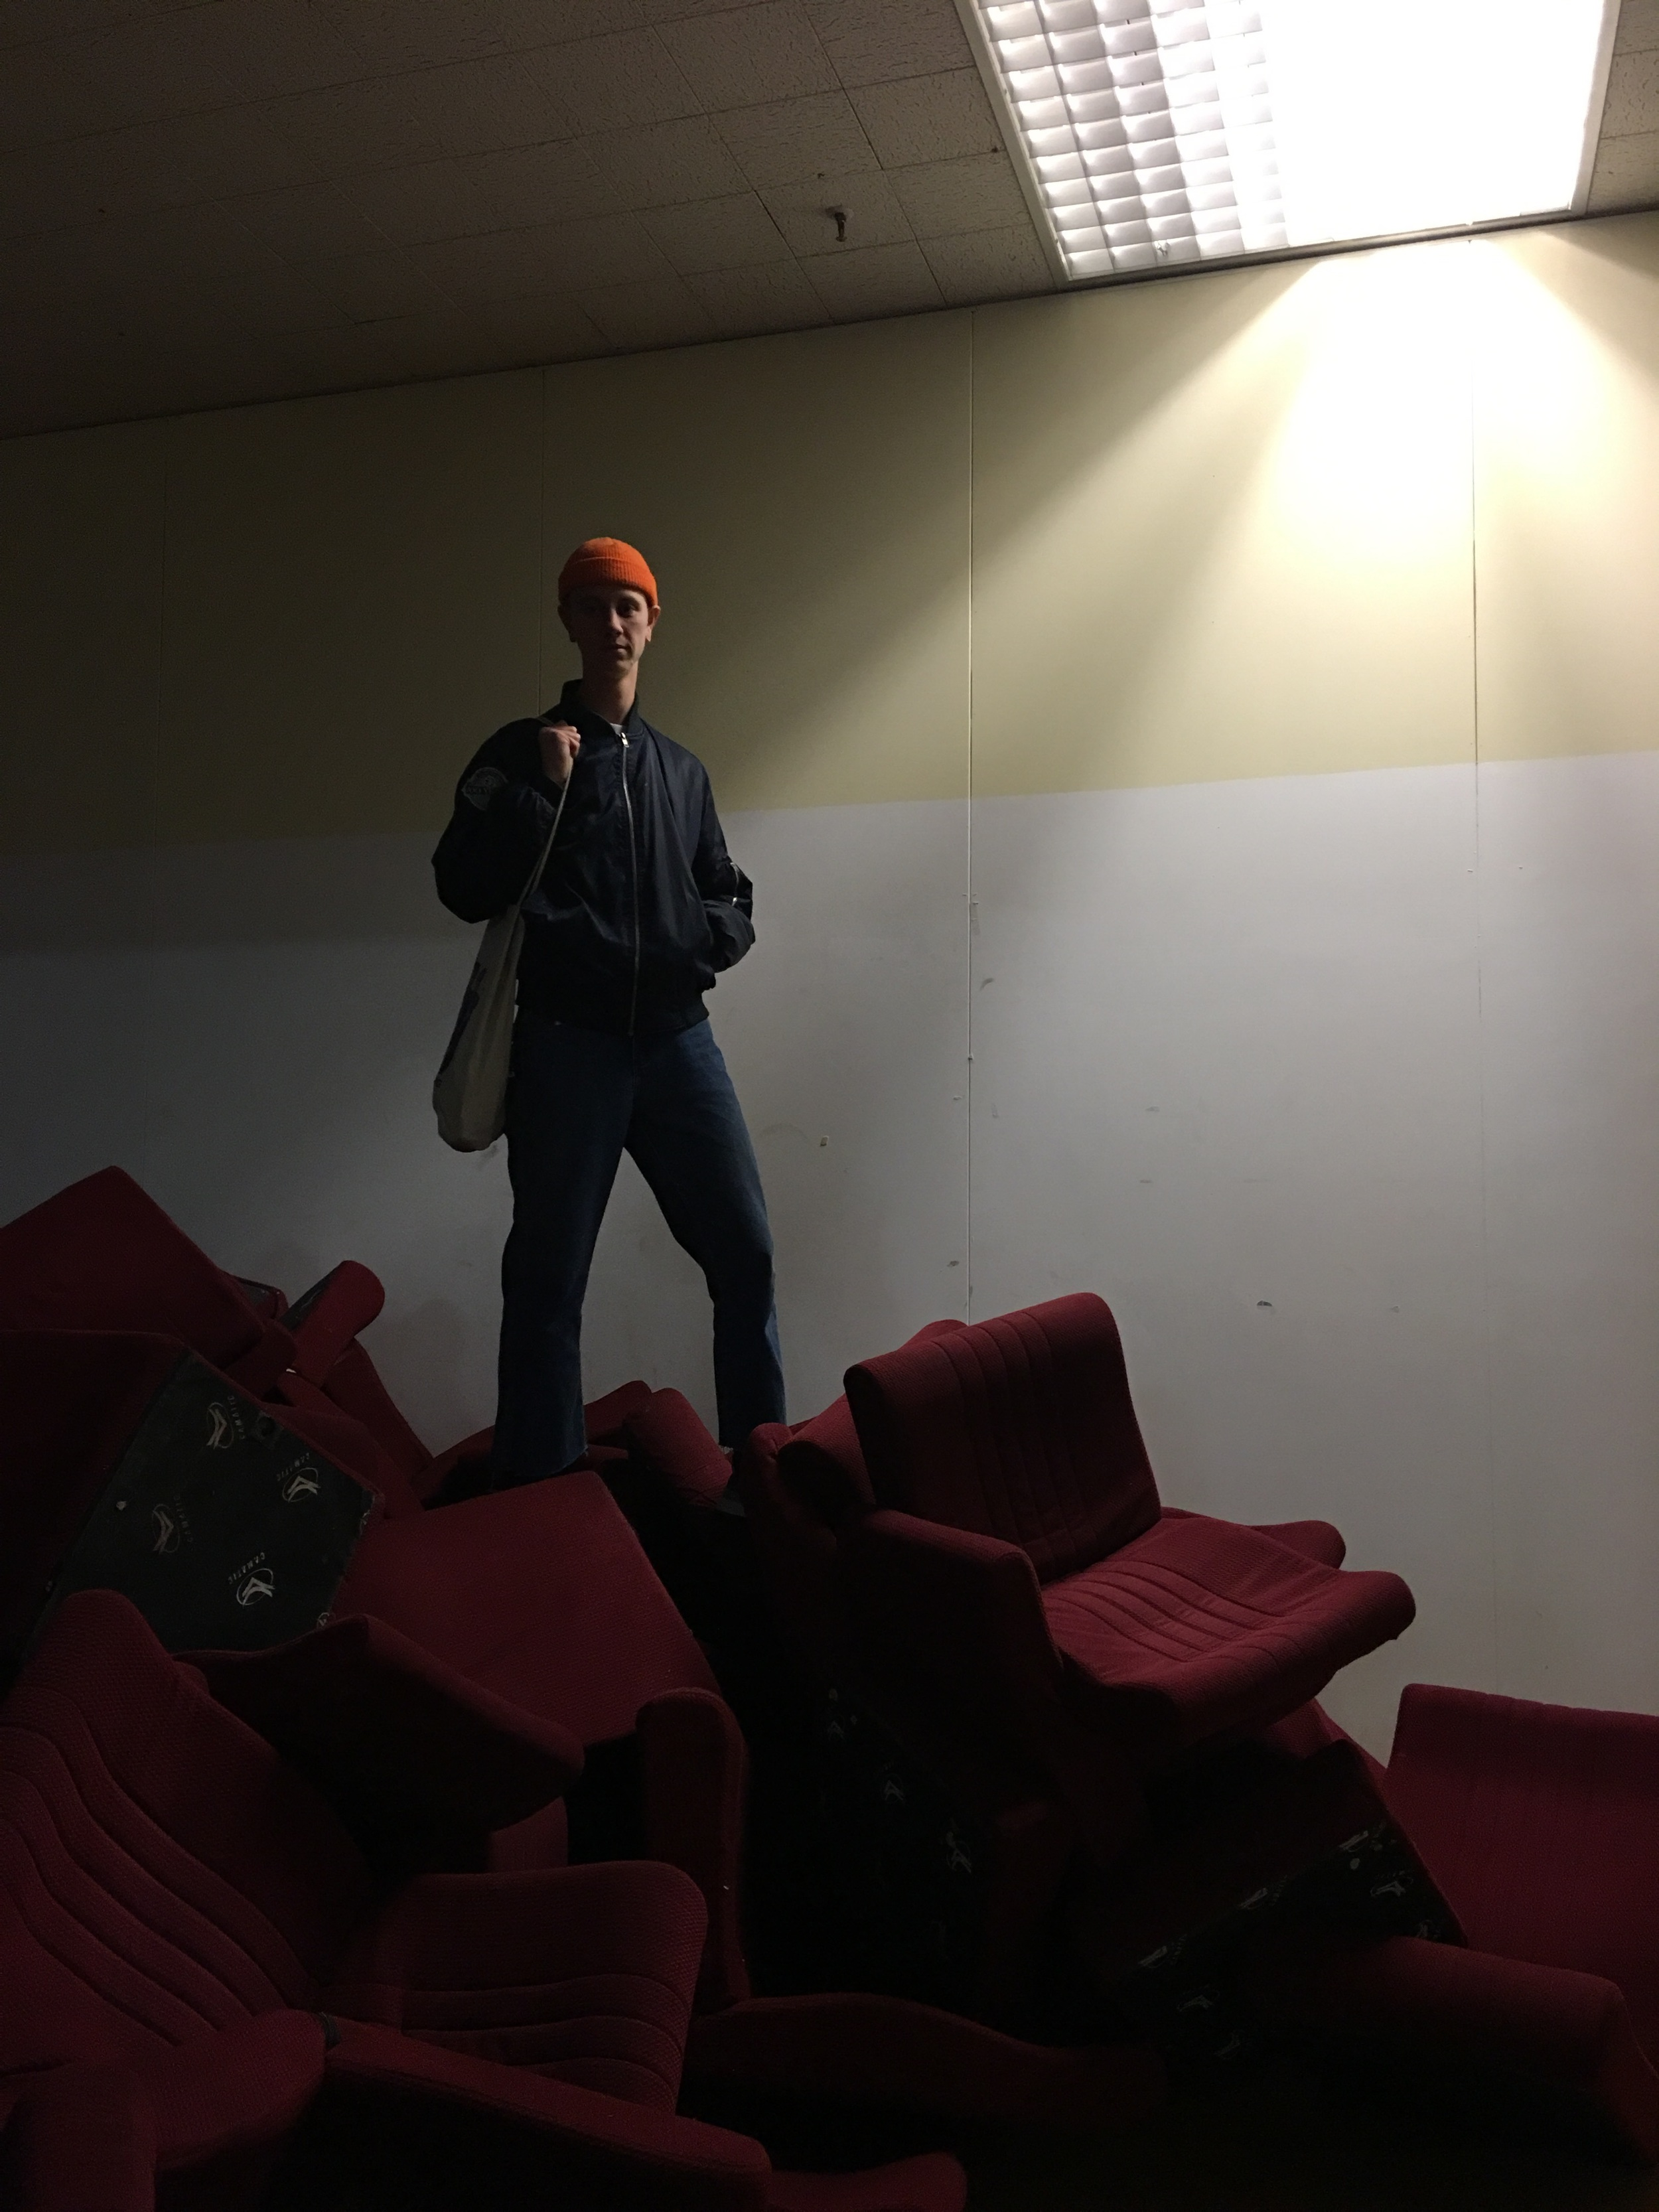 Small mountain of old cinema chairs, featuring Luke